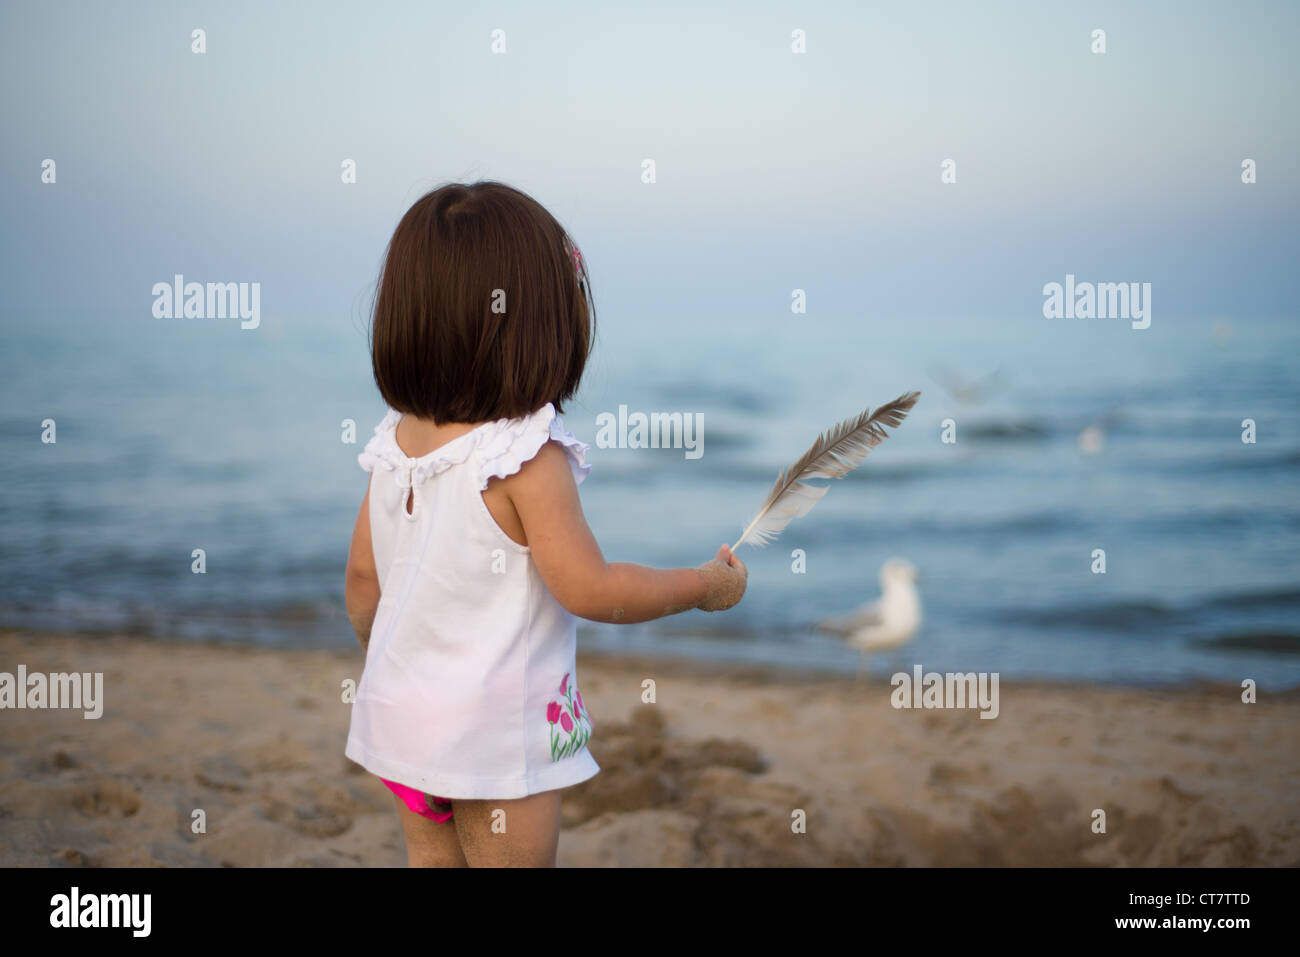 Young girl holding a feather looking out across open water and towards seagulls Stock Photo